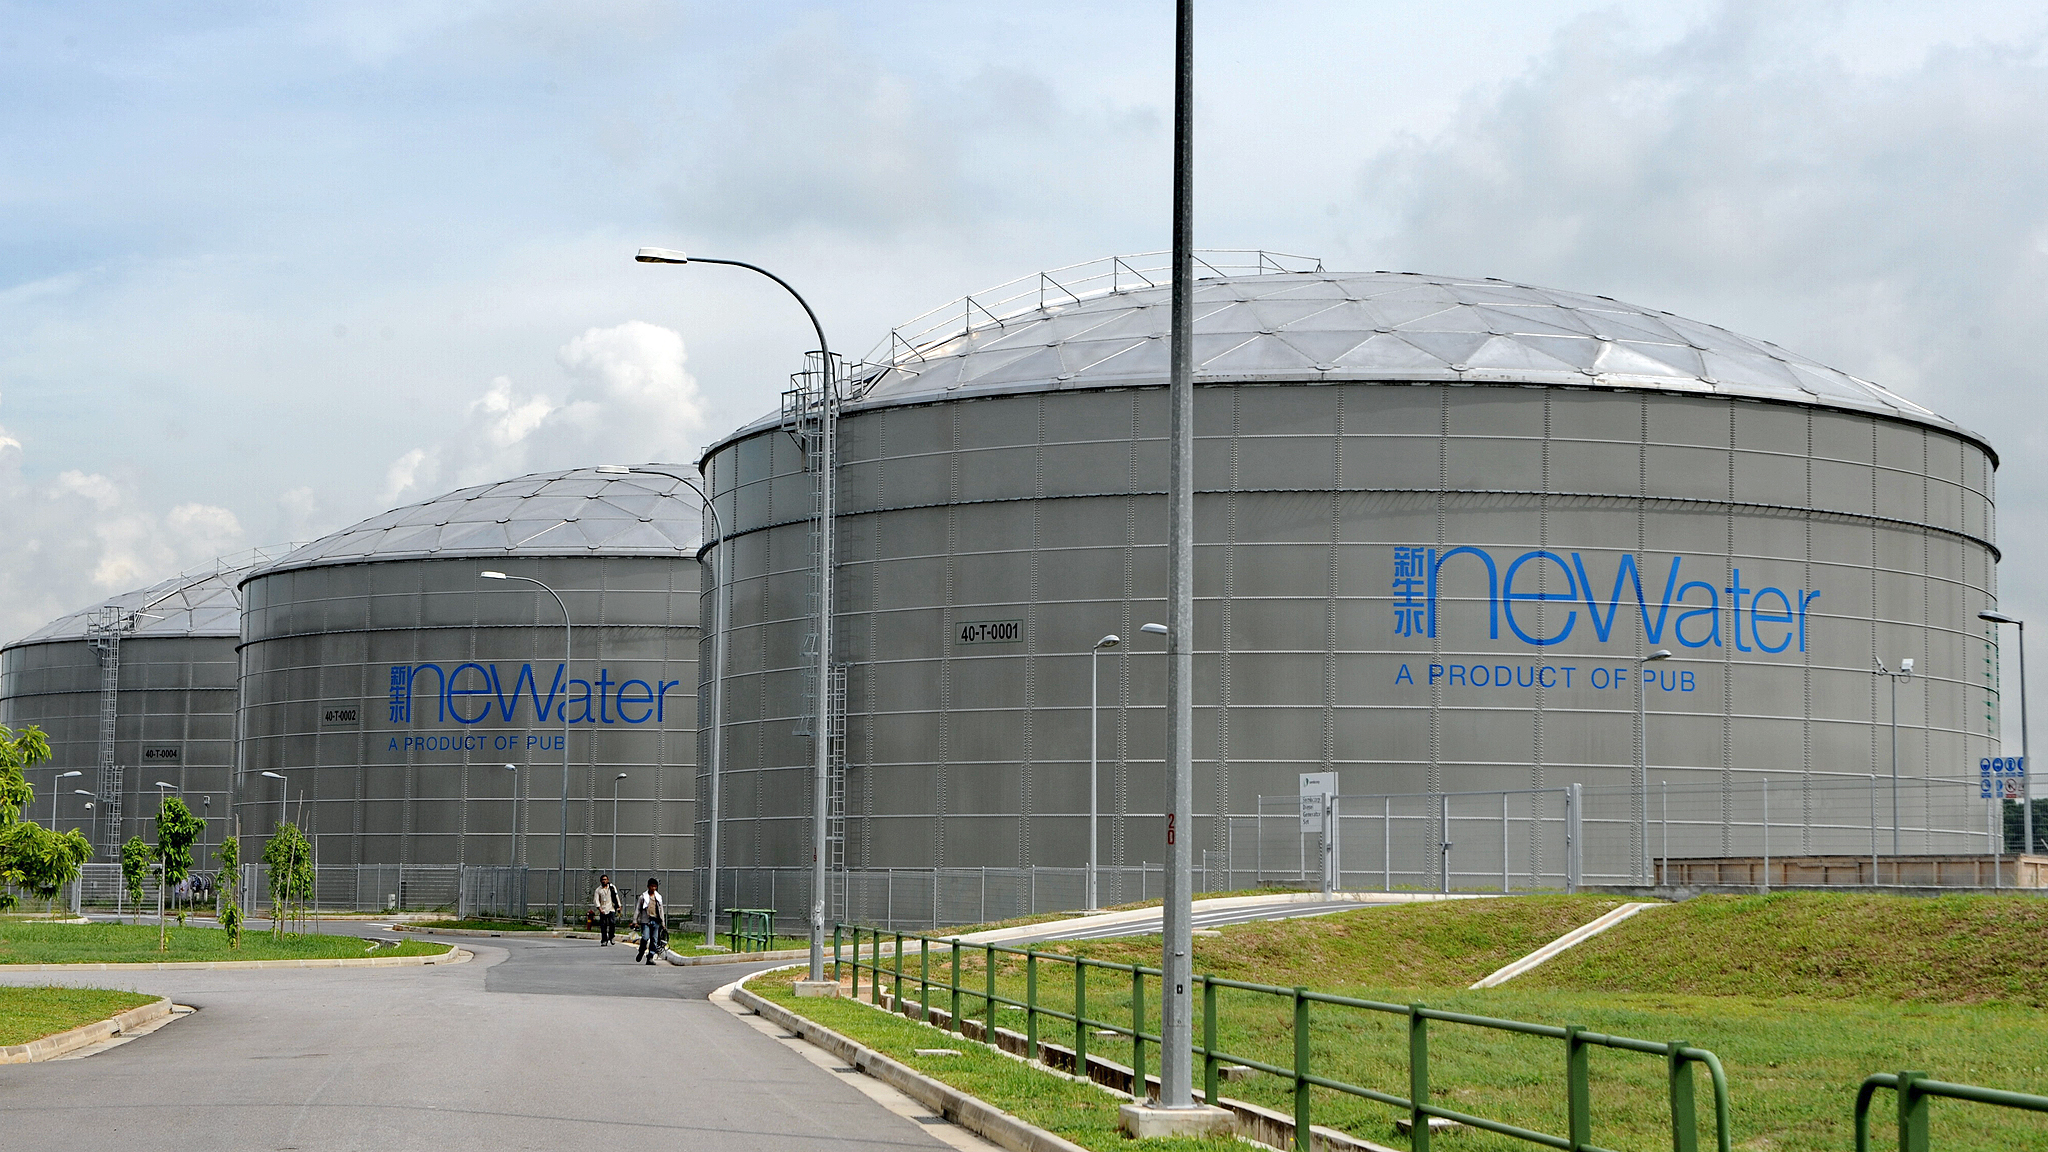 Singapore seeks sustainable water supply